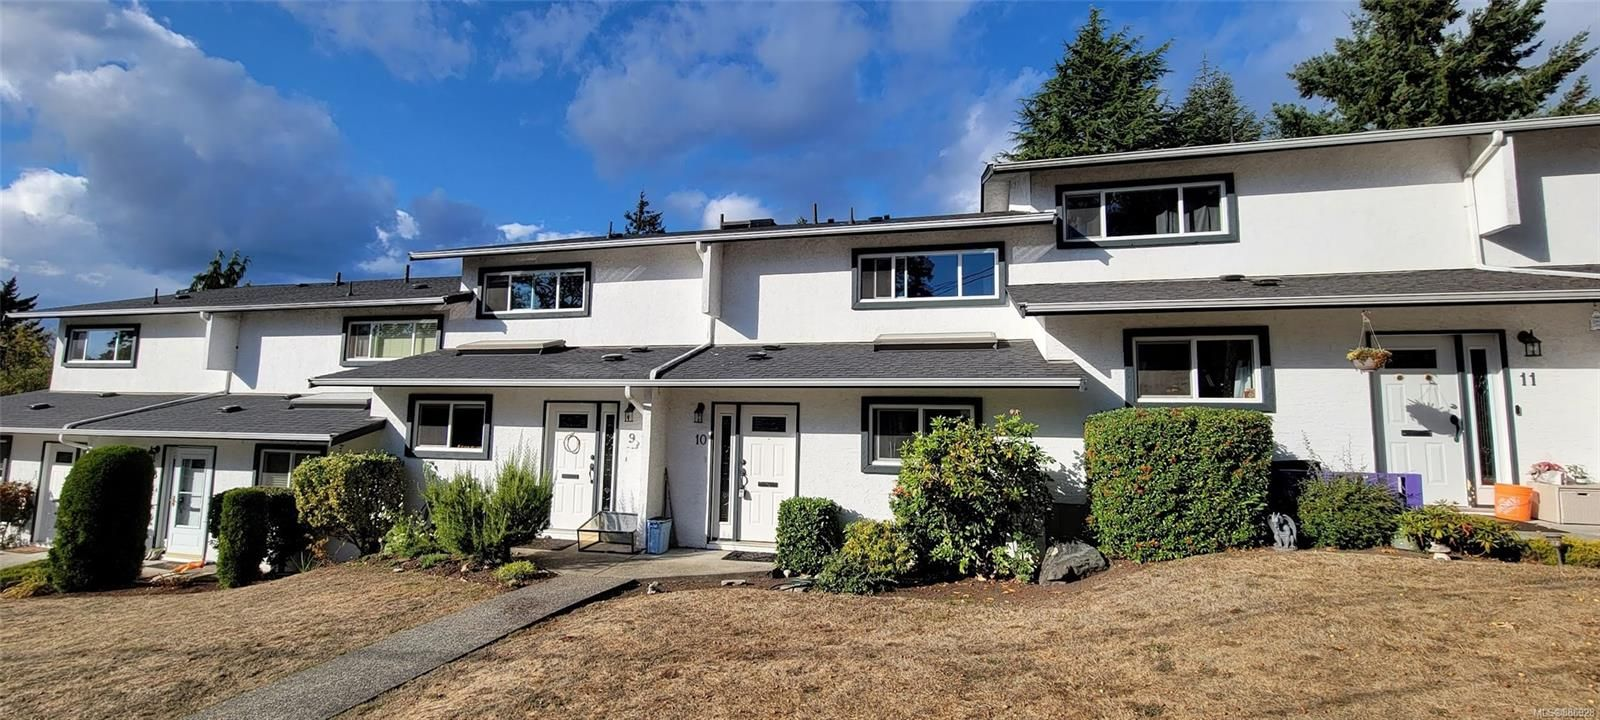 Main Photo: 10 3228 Wicklow St in : SE Maplewood Row/Townhouse for sale (Saanich East)  : MLS®# 886928